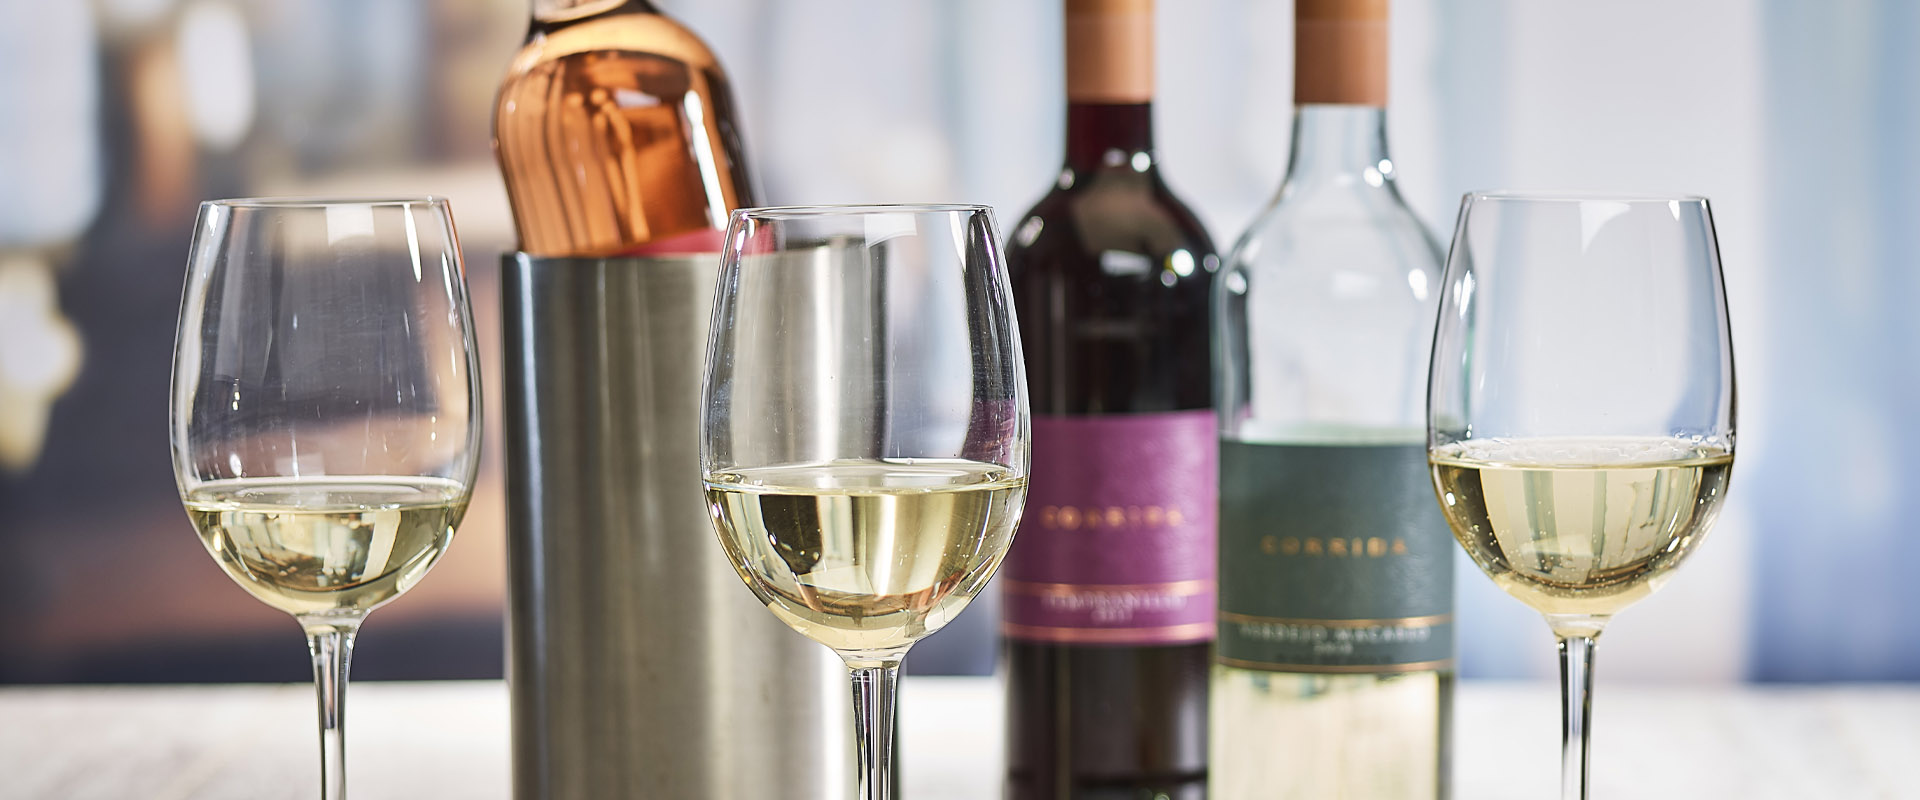 Pre-Pay for Wine this Christmas at The Harrow